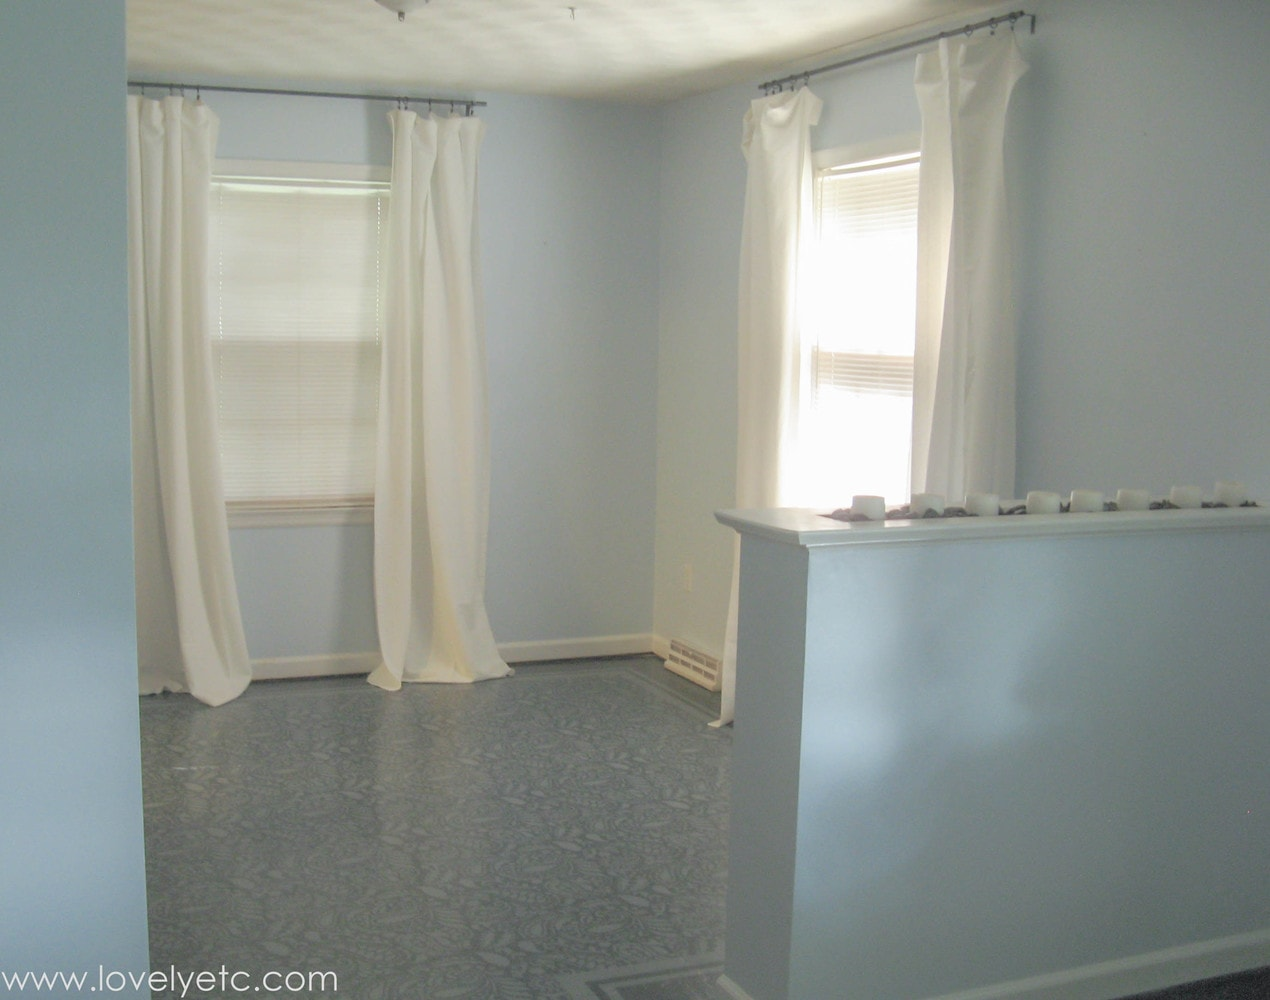 Diy curtain rods conduit - Dining Room With Diy Curtain Rods